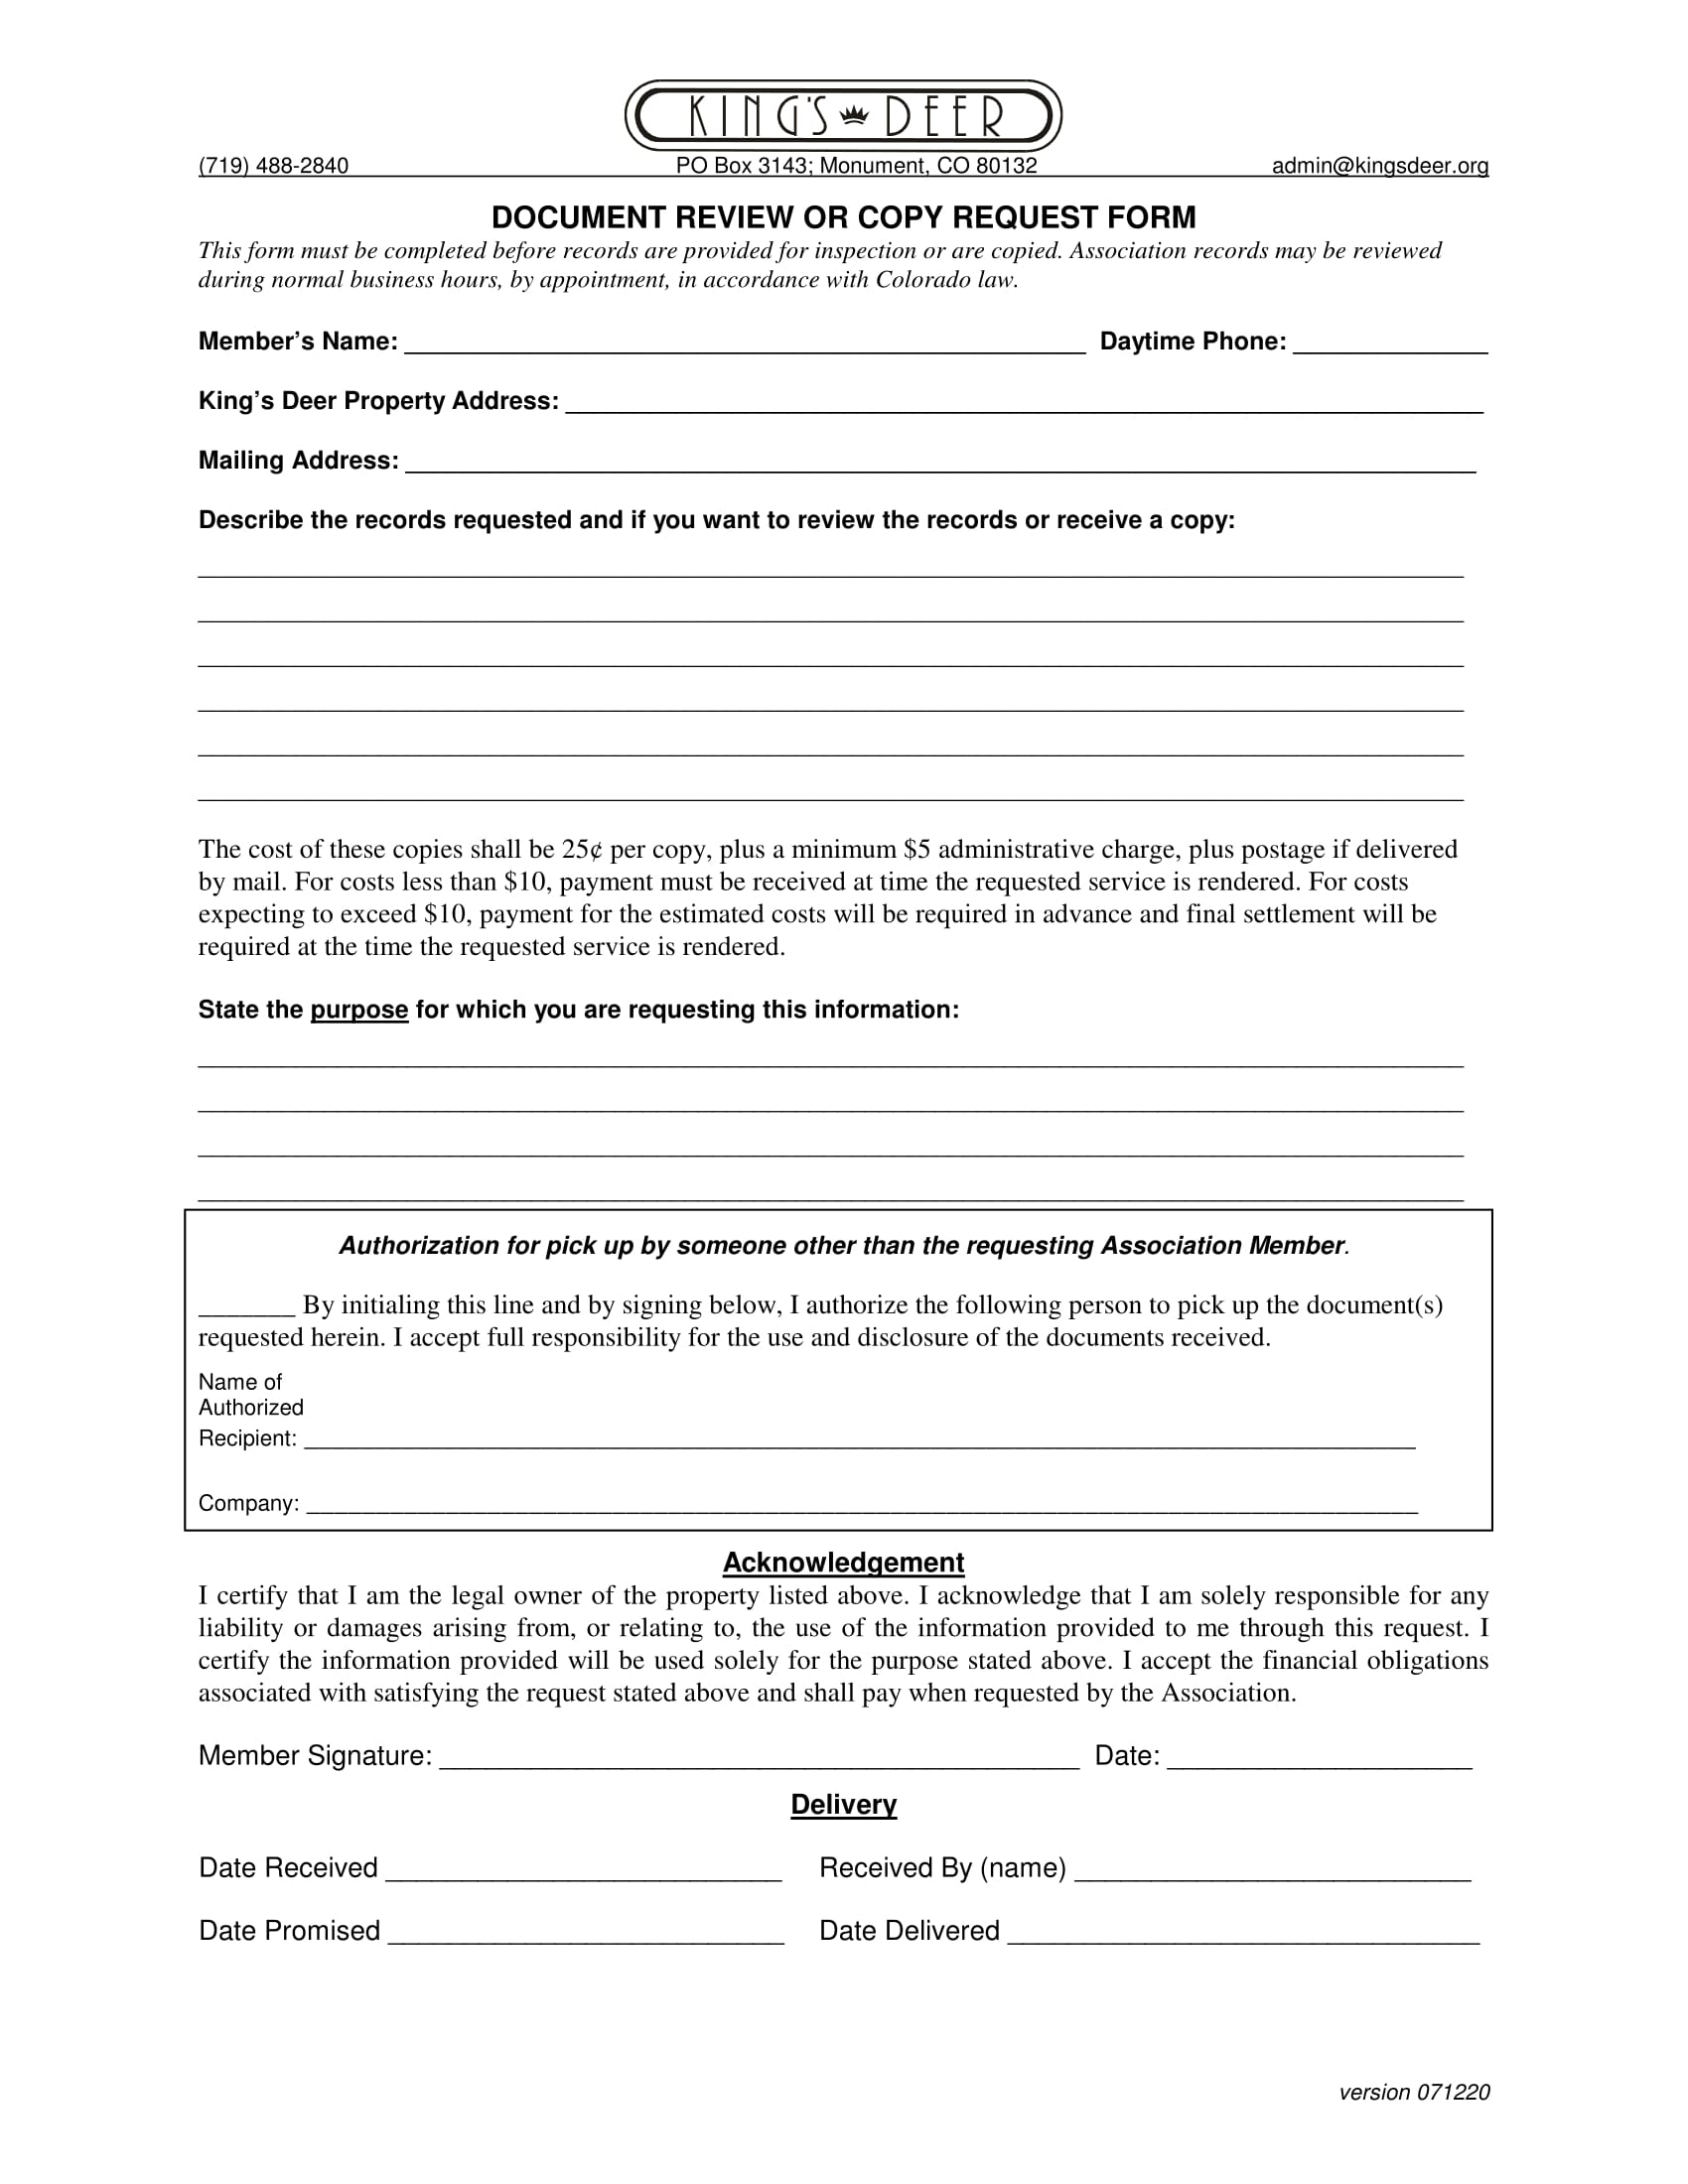 document review or copy request form 1